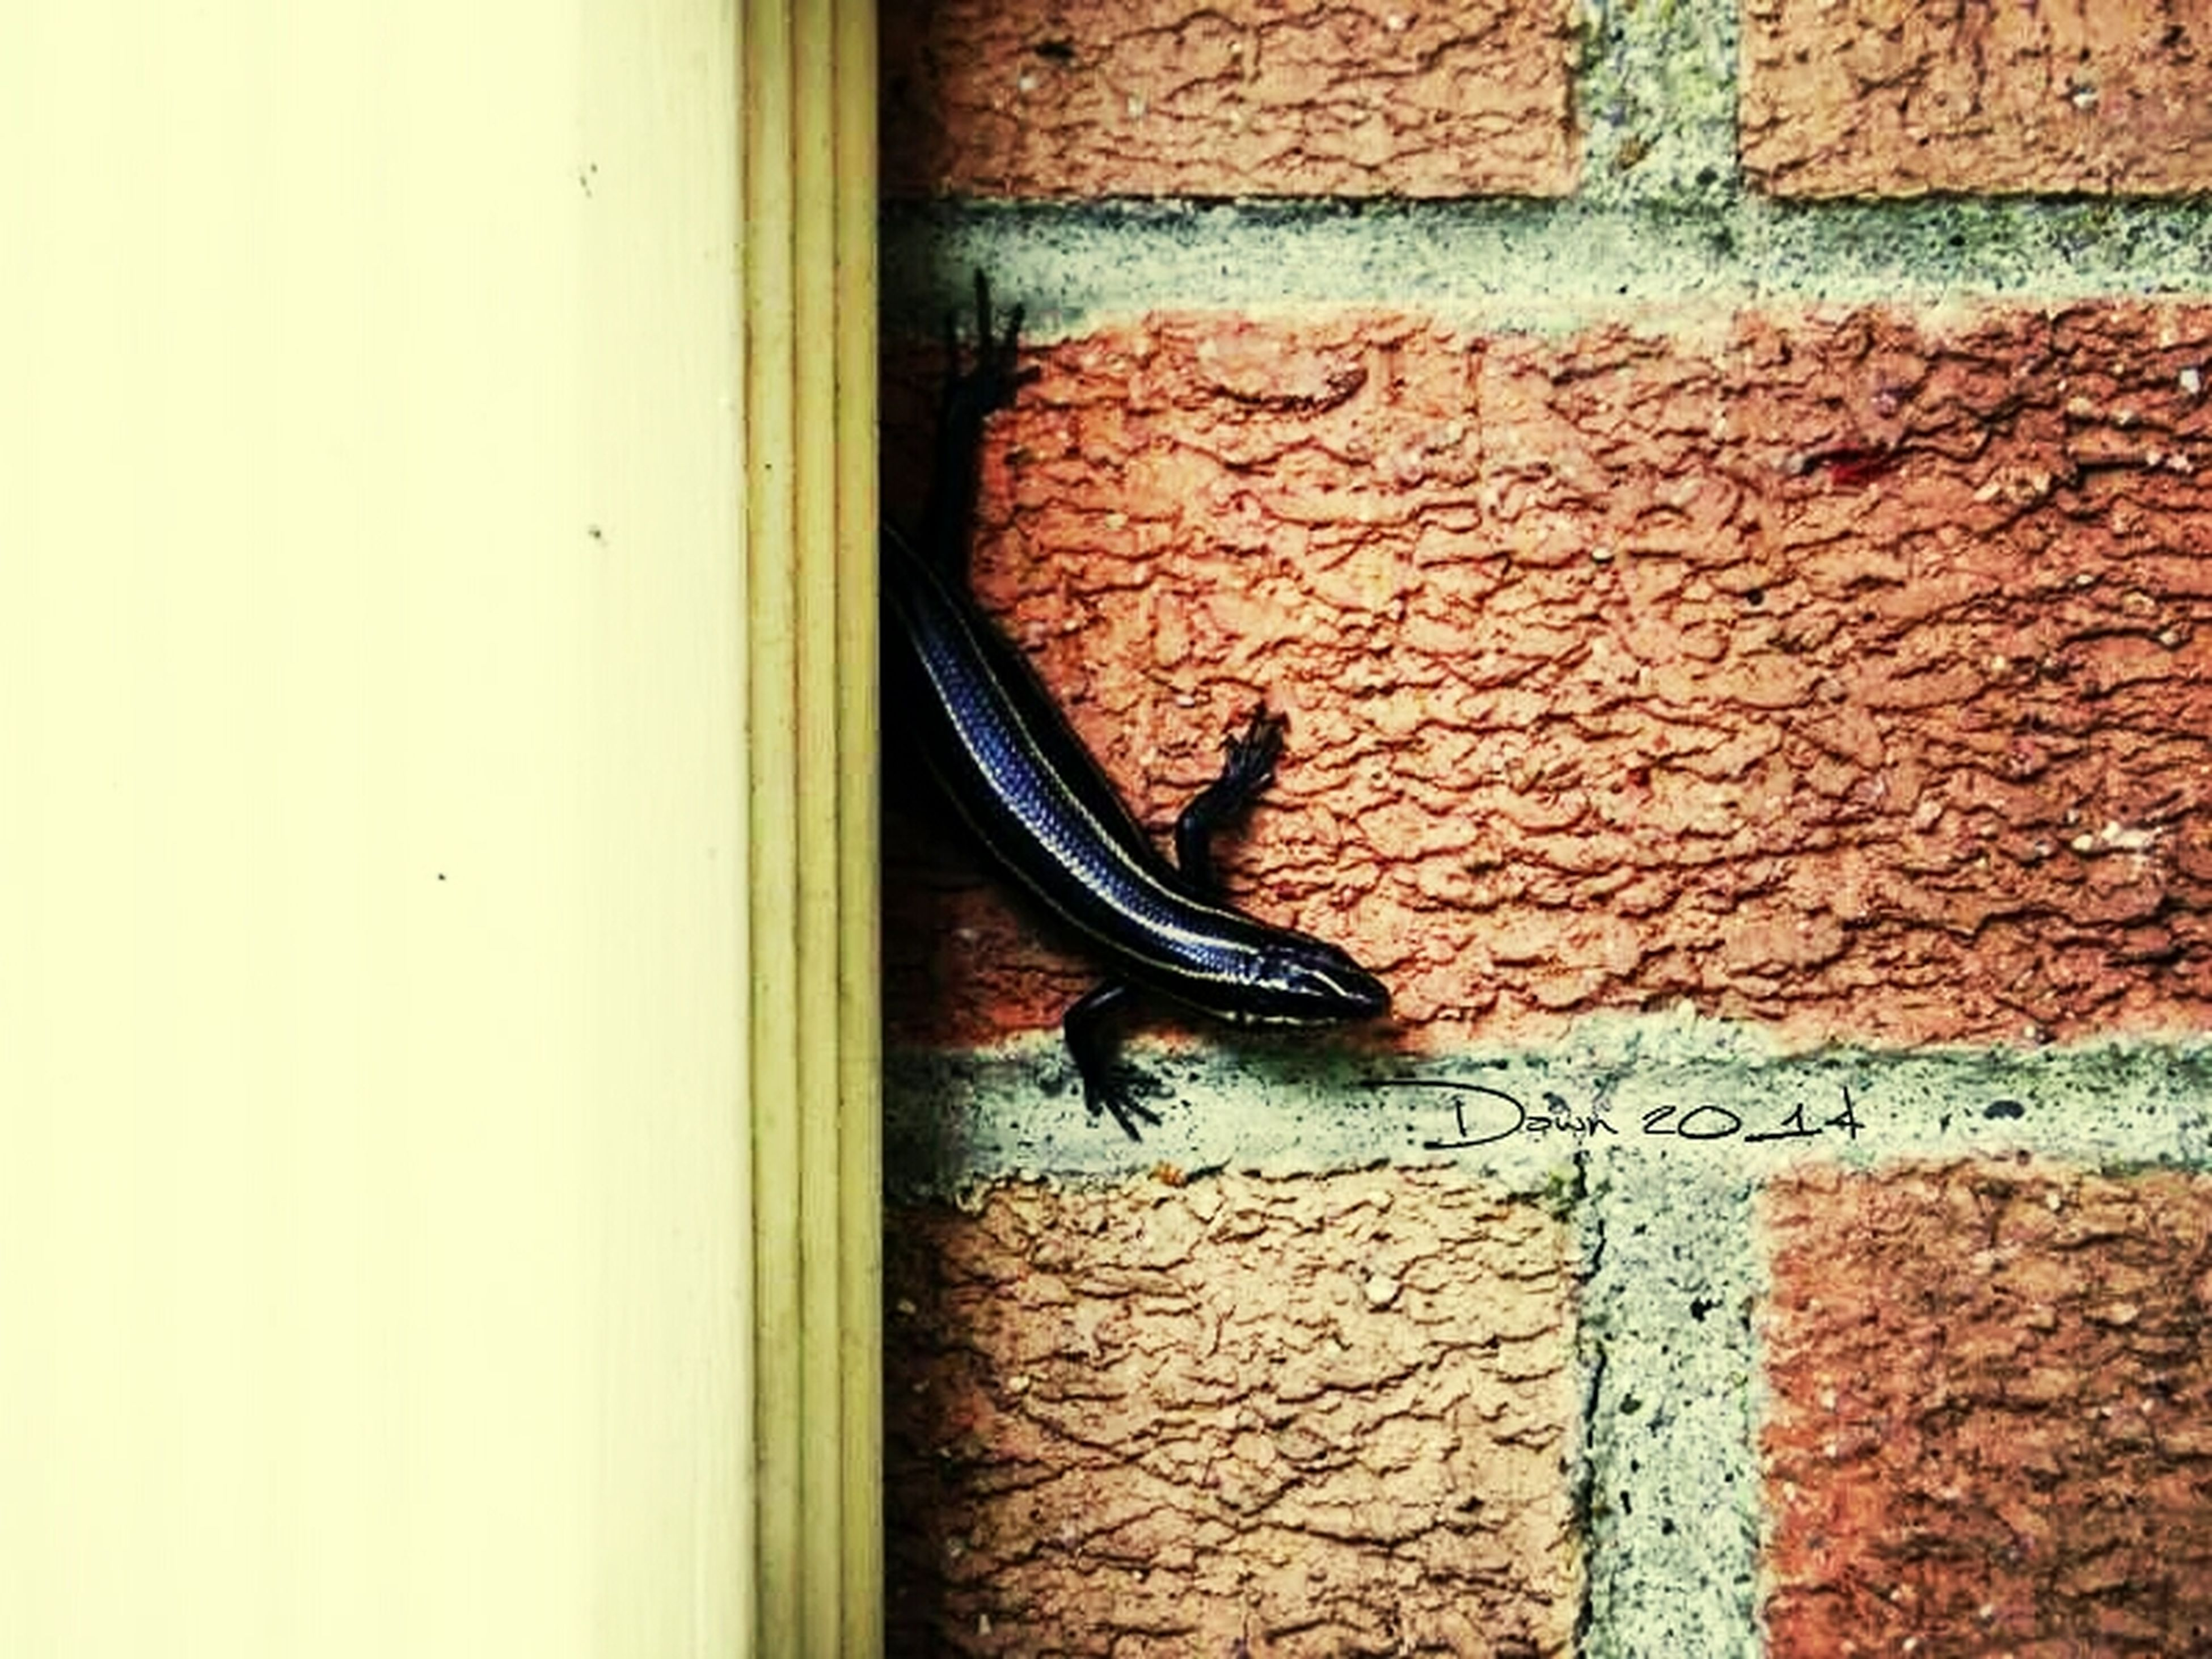 one animal, animal themes, animals in the wild, wildlife, wall - building feature, wall, lizard, built structure, insect, architecture, brick wall, side view, outdoors, full length, close-up, day, no people, building exterior, window, reptile